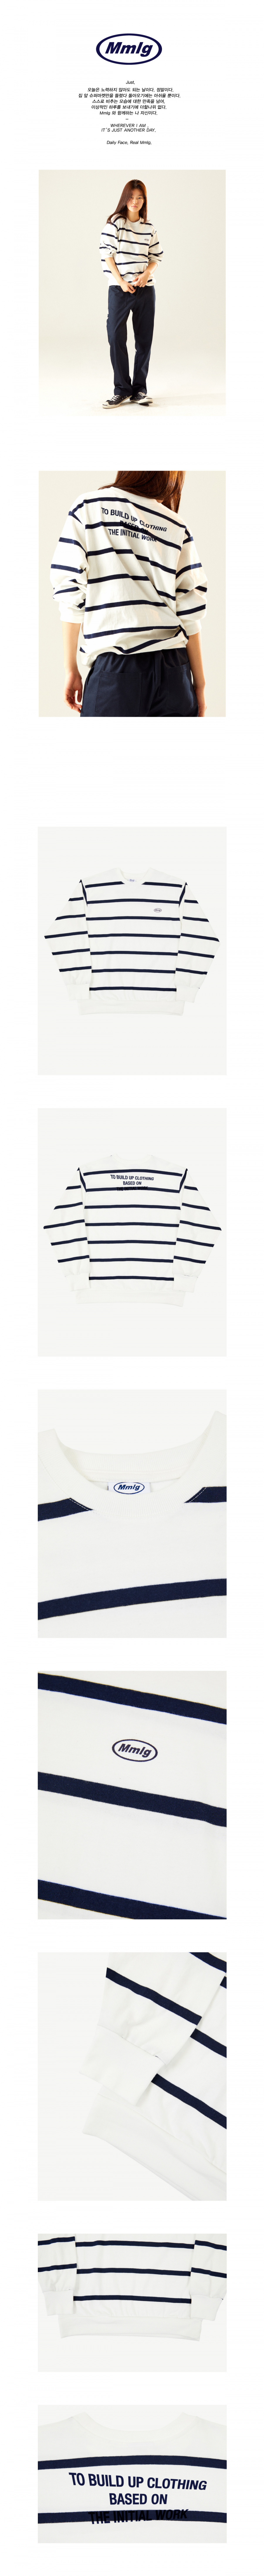 팔칠엠엠서울(87MM_SEOUL) [Mmlg] MMLG STRIPE SWEAT (WHITE)